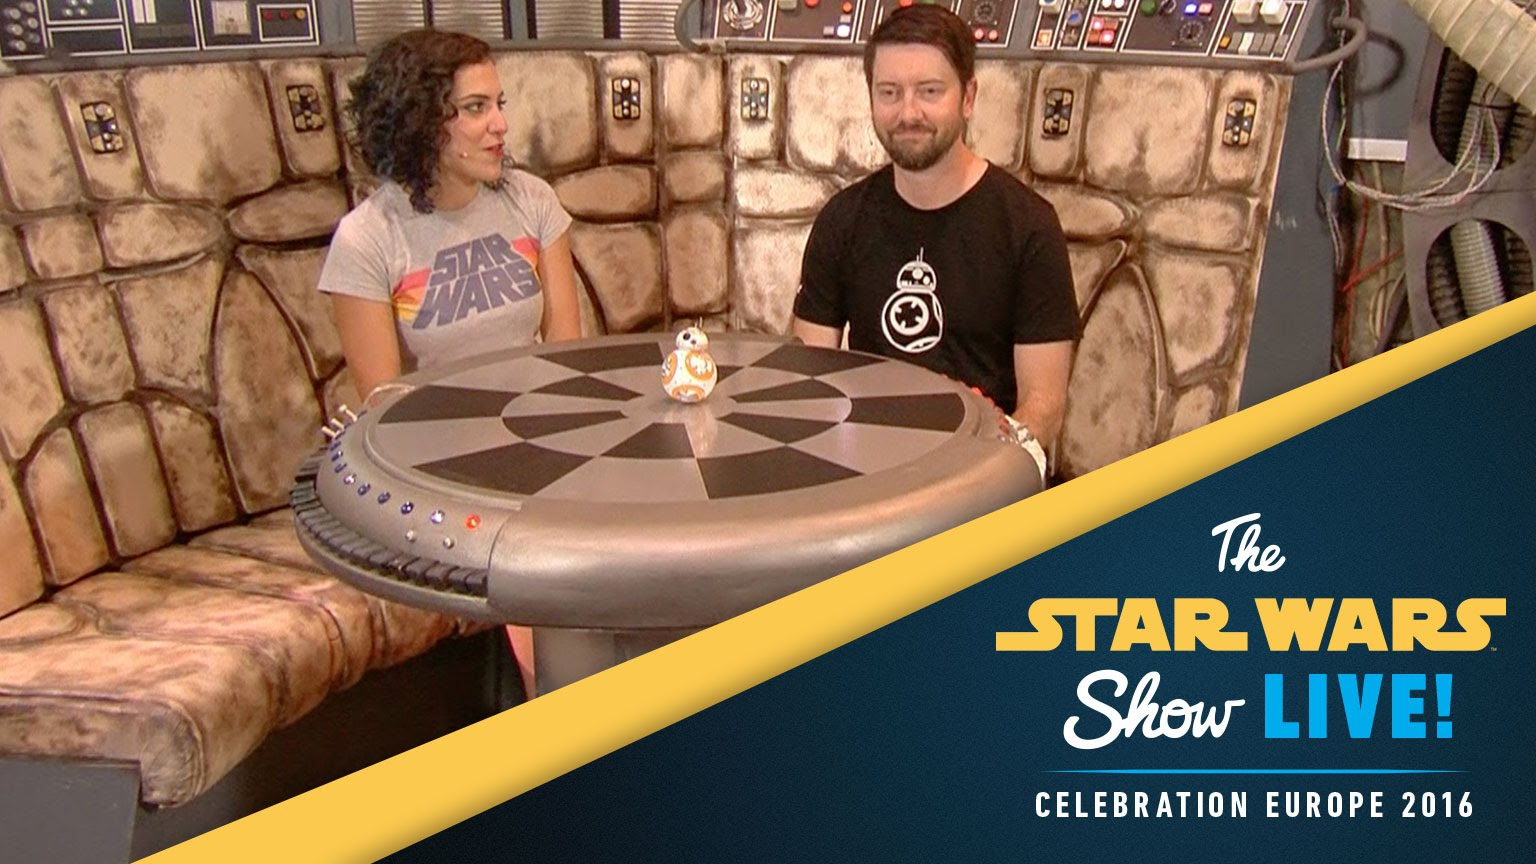 Blaine Christine (Sphero) Interview | Star Wars Celebration Europe 2016